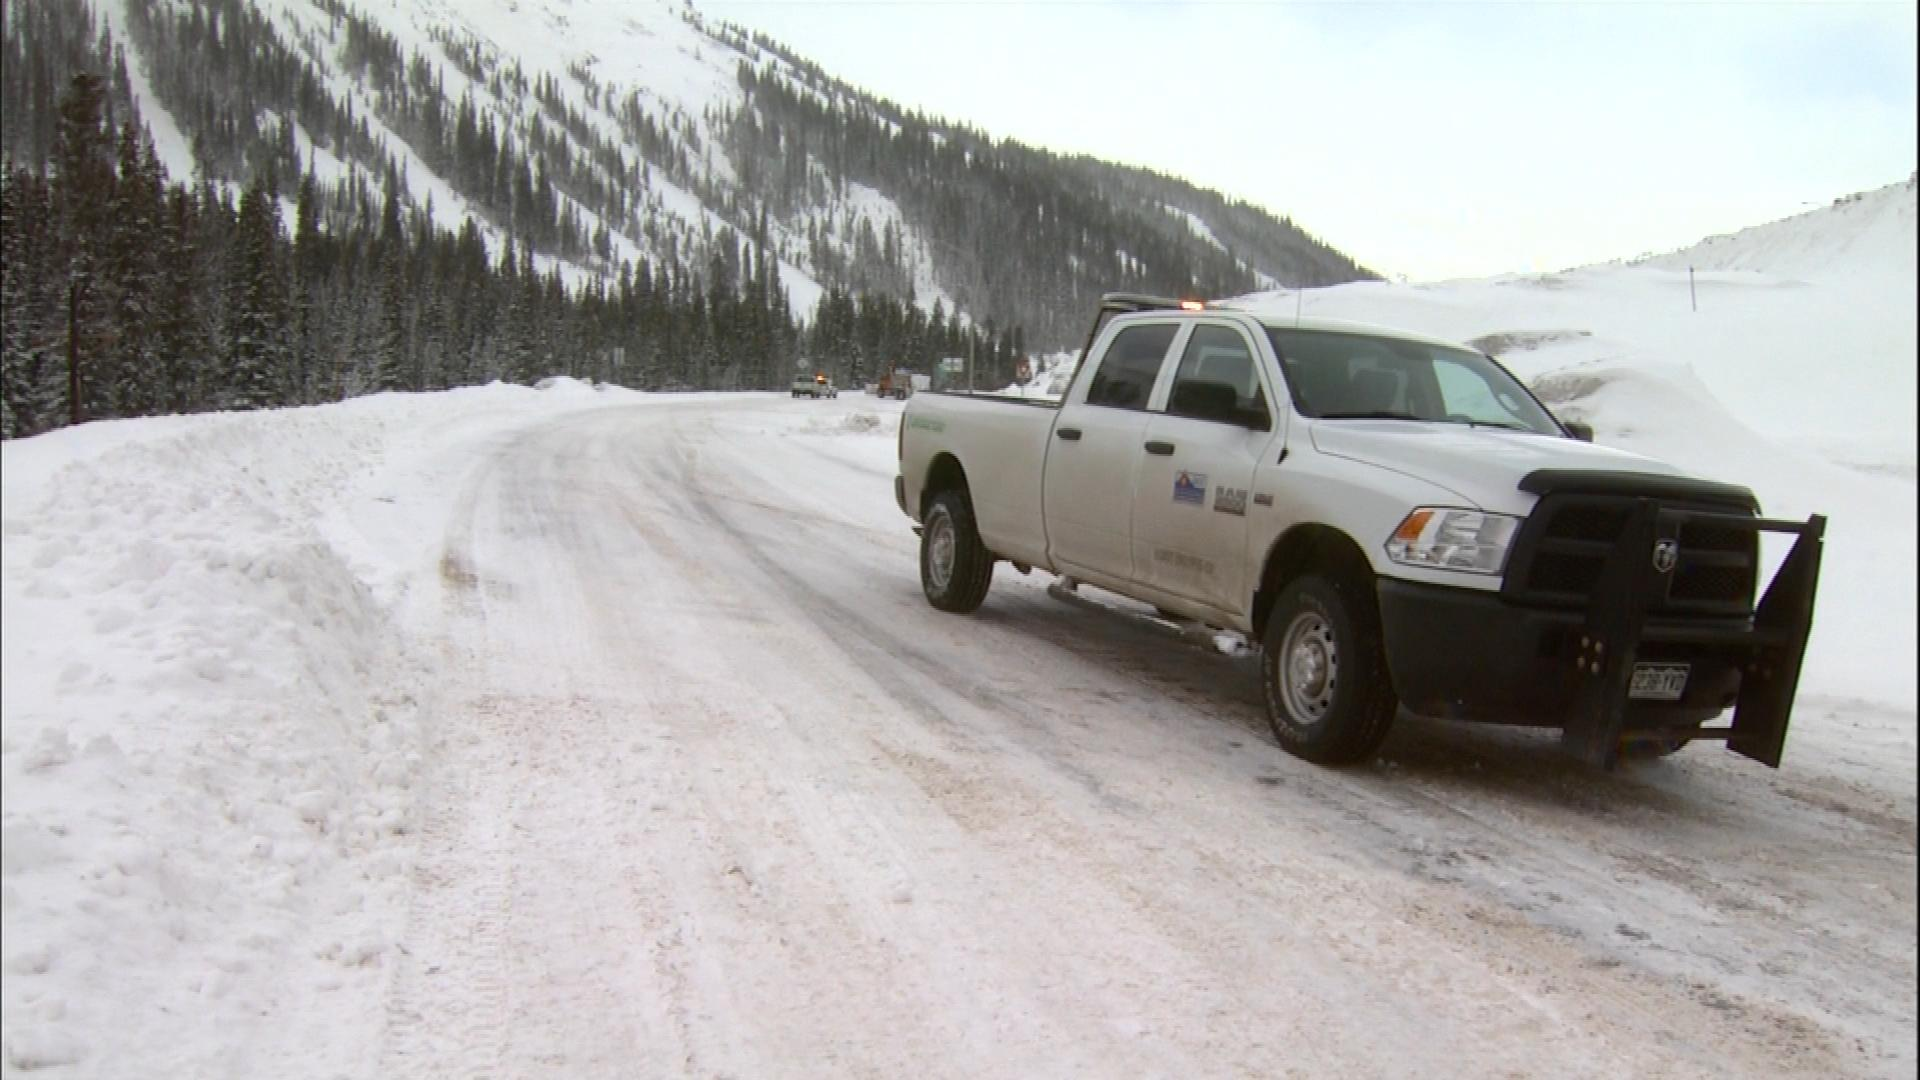 An image from Loveland Pass Monday morning (credit: CBS)